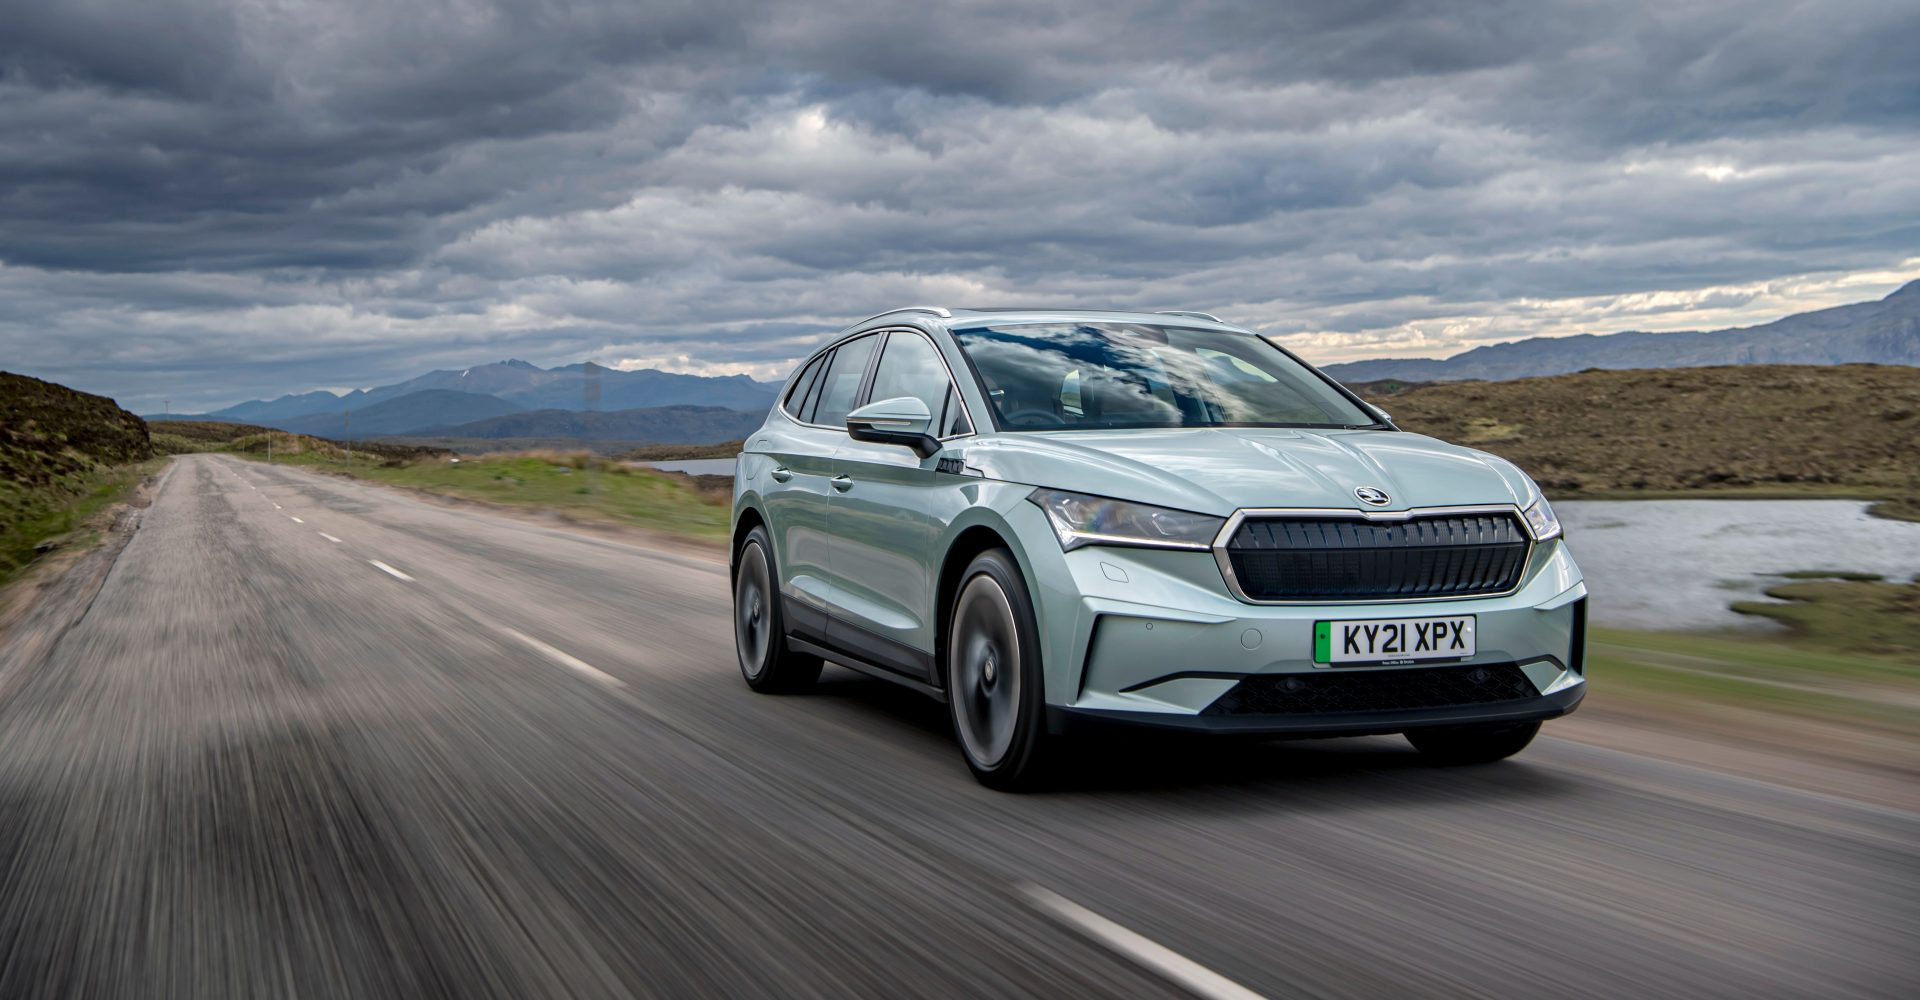 First Drive: Is Skoda's Enyaq iV the ideal everyday EV?